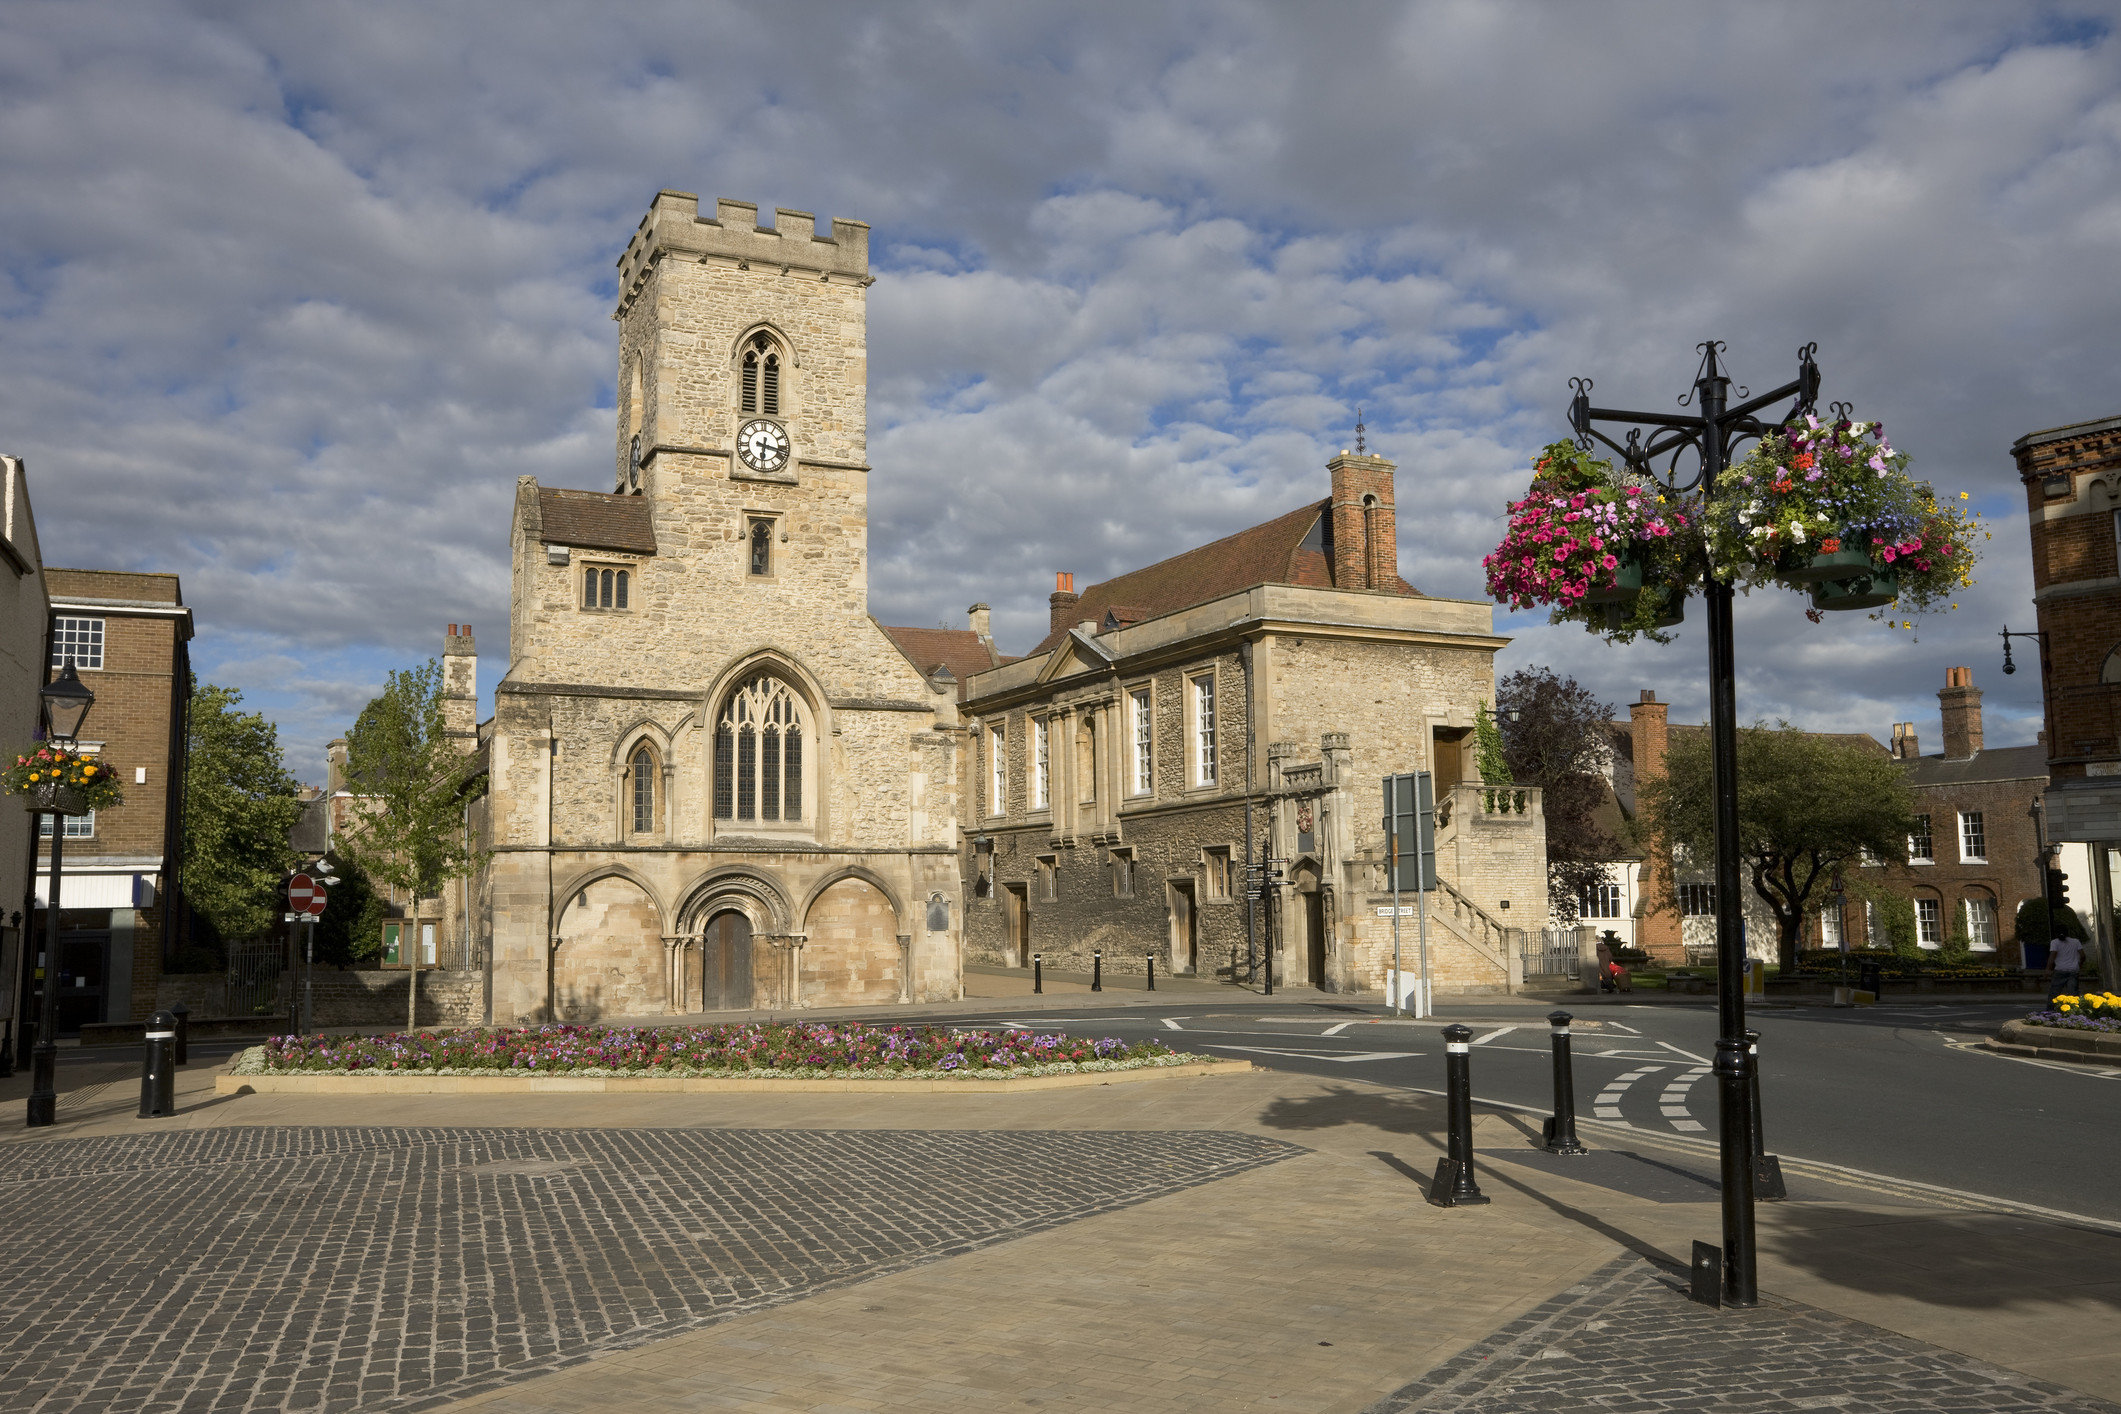 Trip Ideas sky outdoor Town town square plaza building City Church street medieval architecture tree cathedral place of worship neighbourhood facade estate history parish basilica historic site day